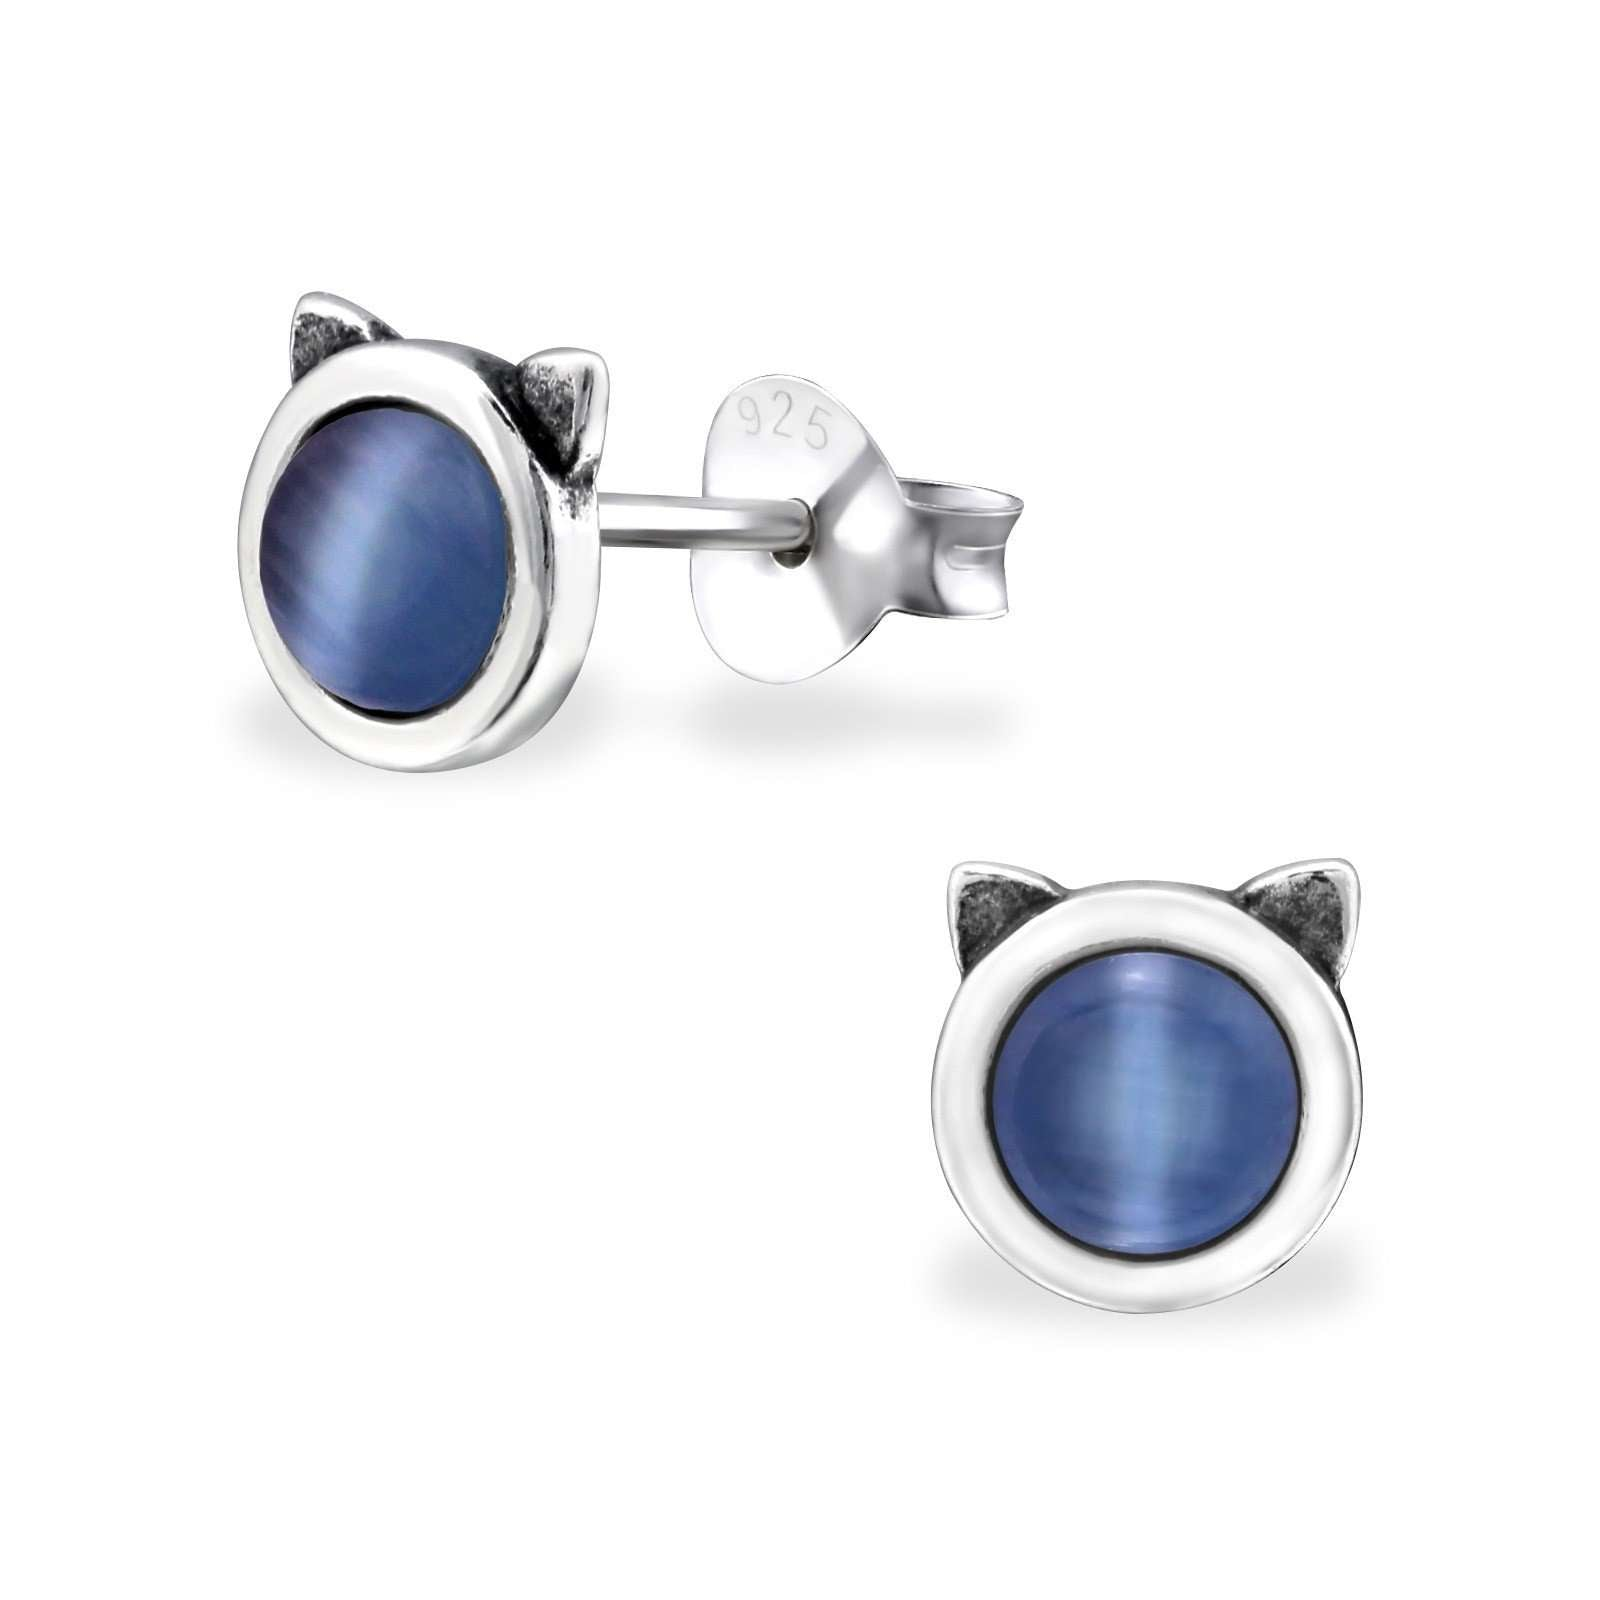 Tiny Blue Calcedony Cat Head Stud Earrings - WHYTE QUARTZ